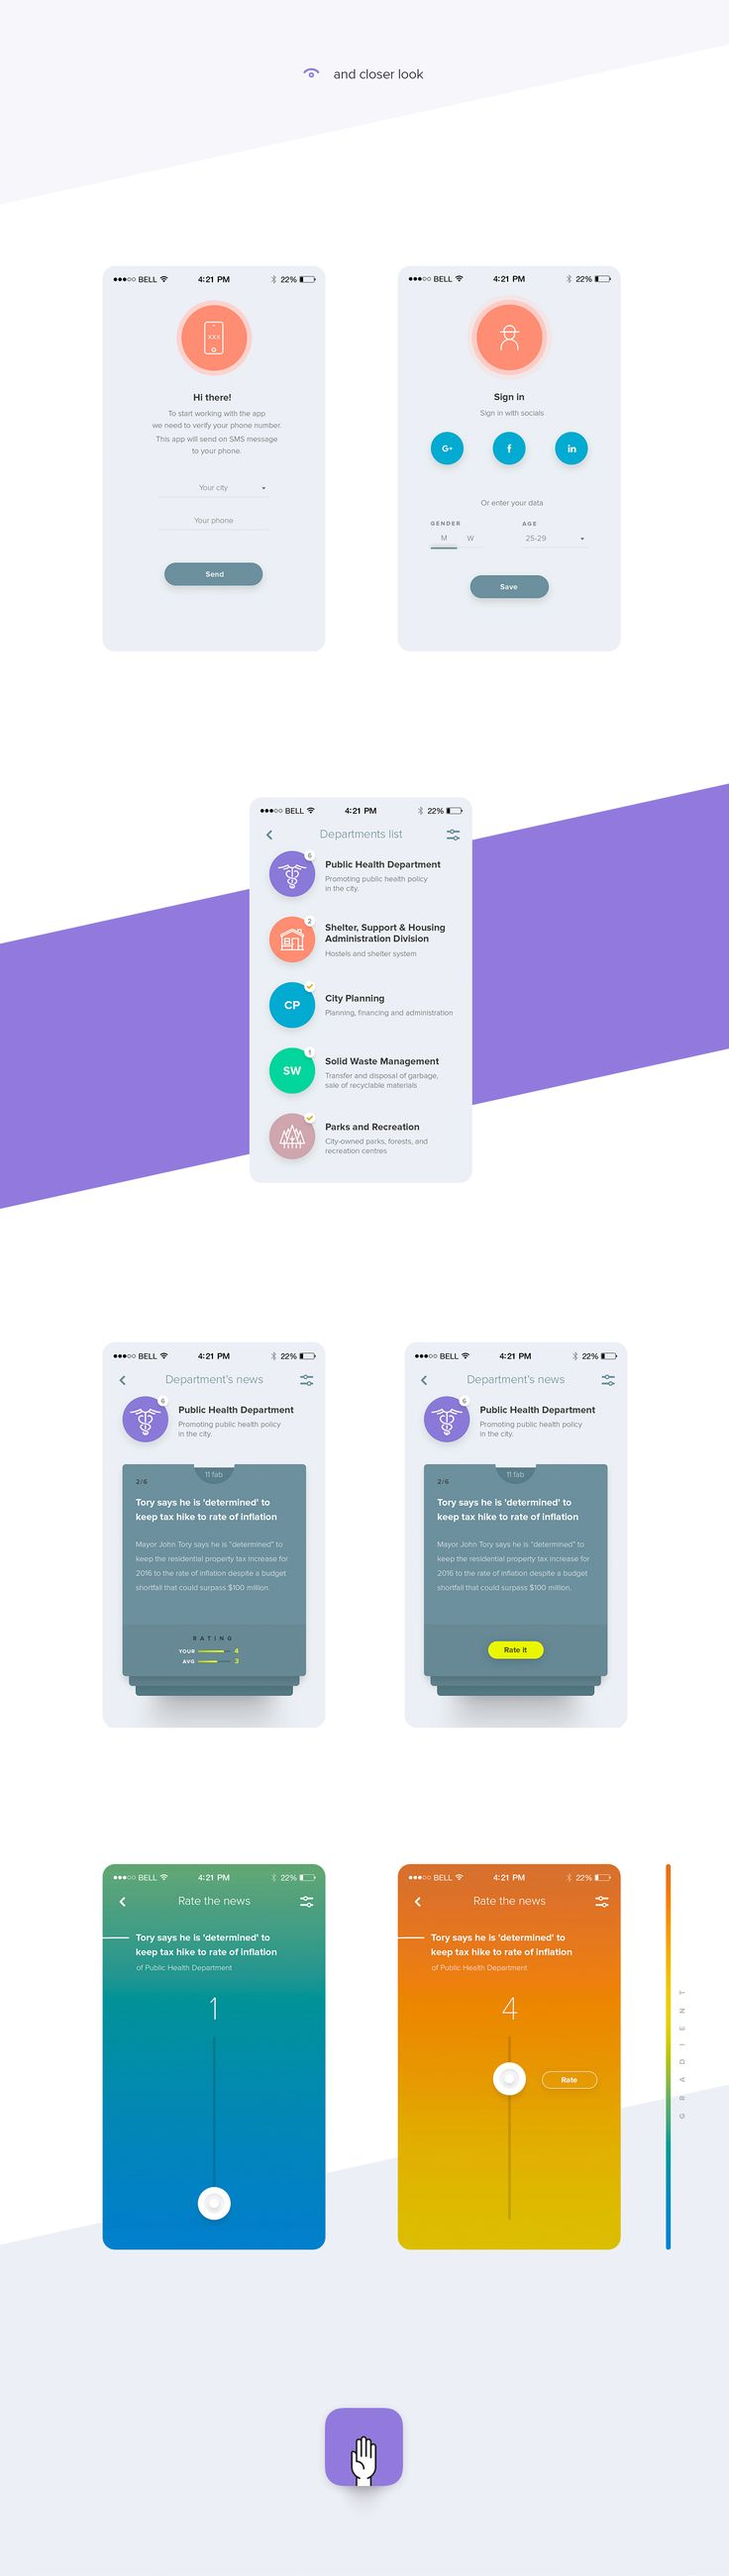 Municipality rating app on Behance